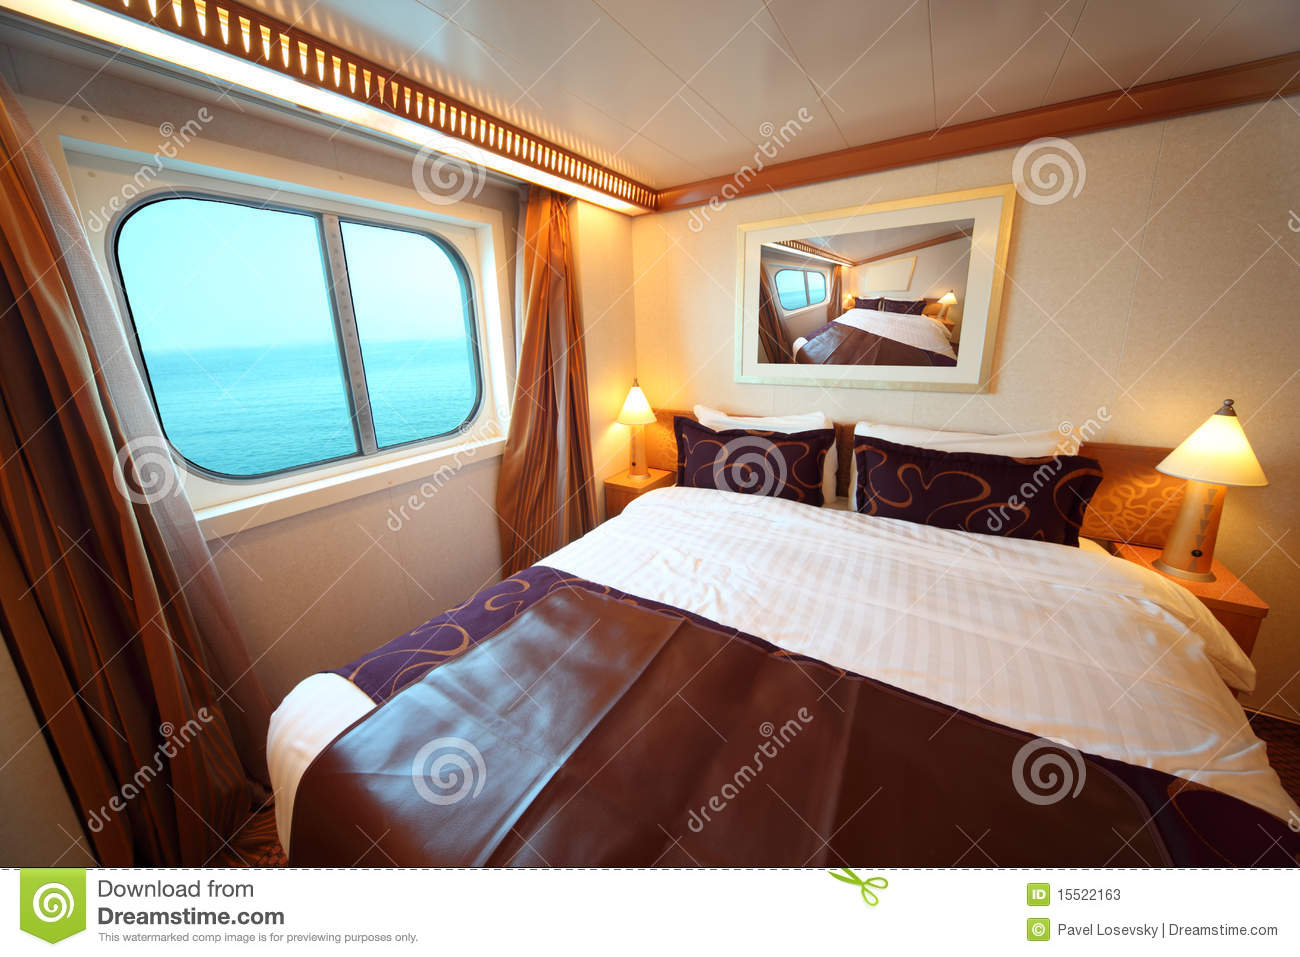 Ship Cabin With Bed And Window With View On Sea Stock Photos.